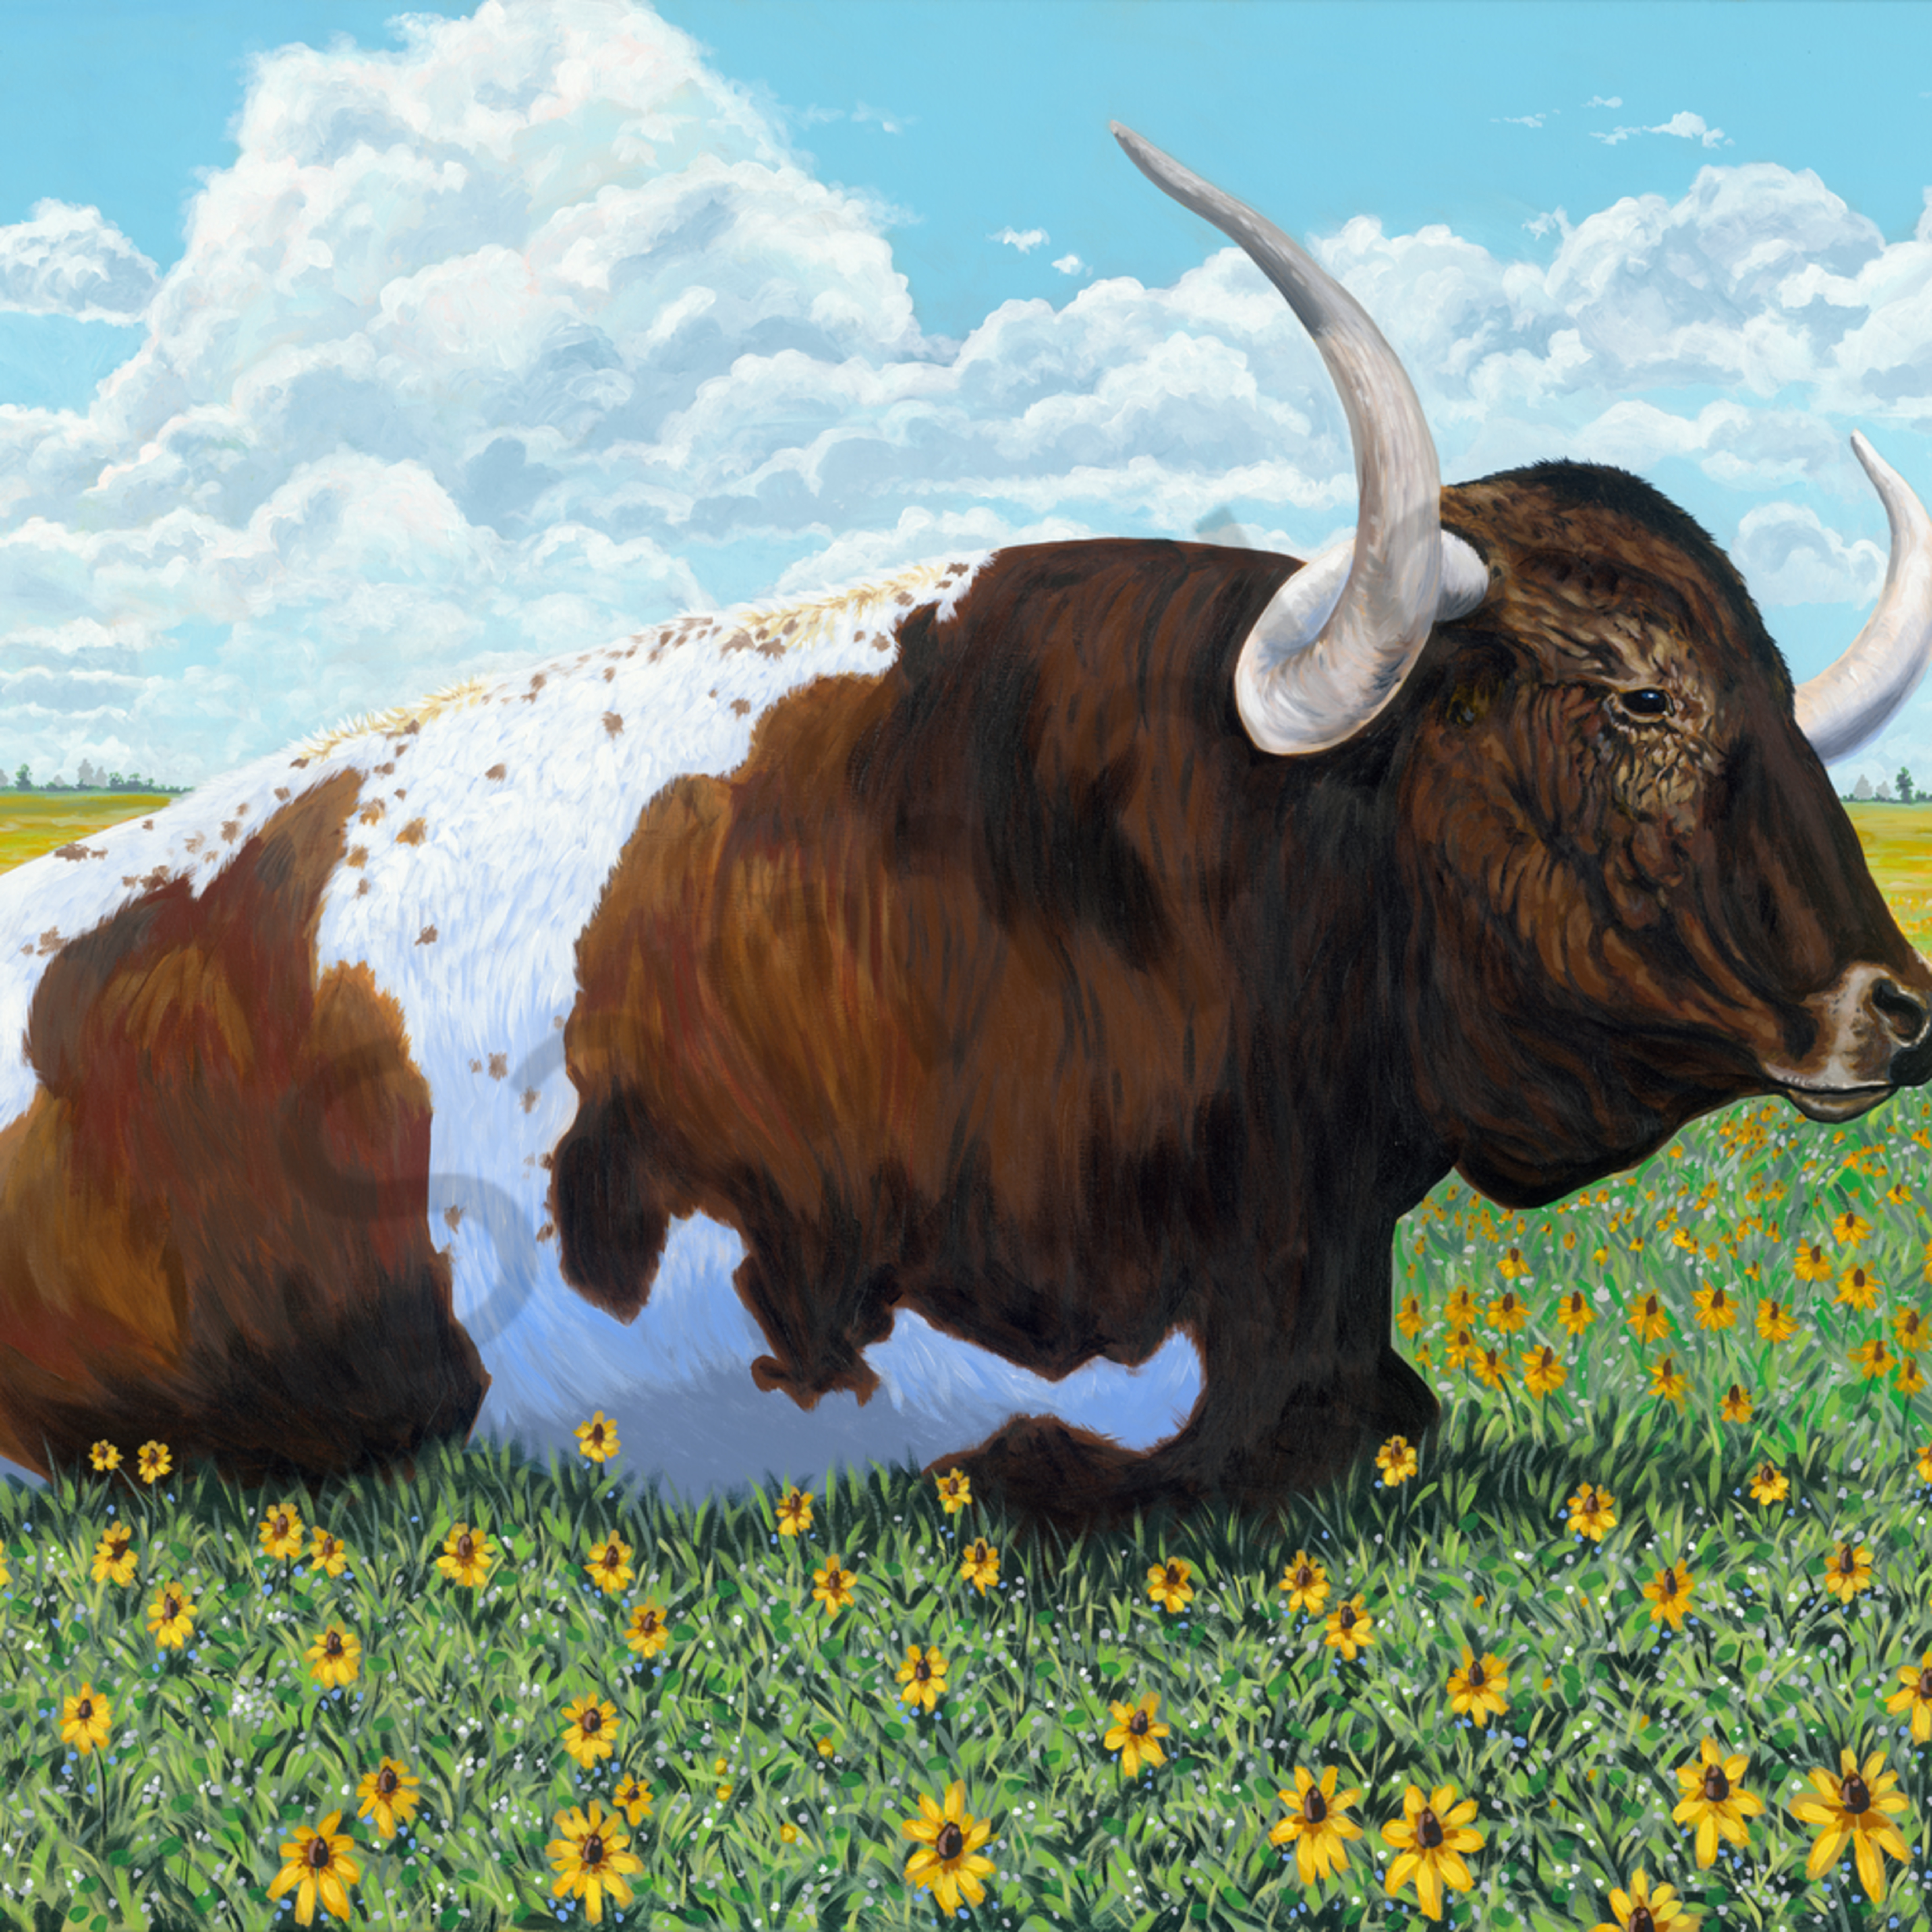 Asf big bull painting 72x48 k2dvry